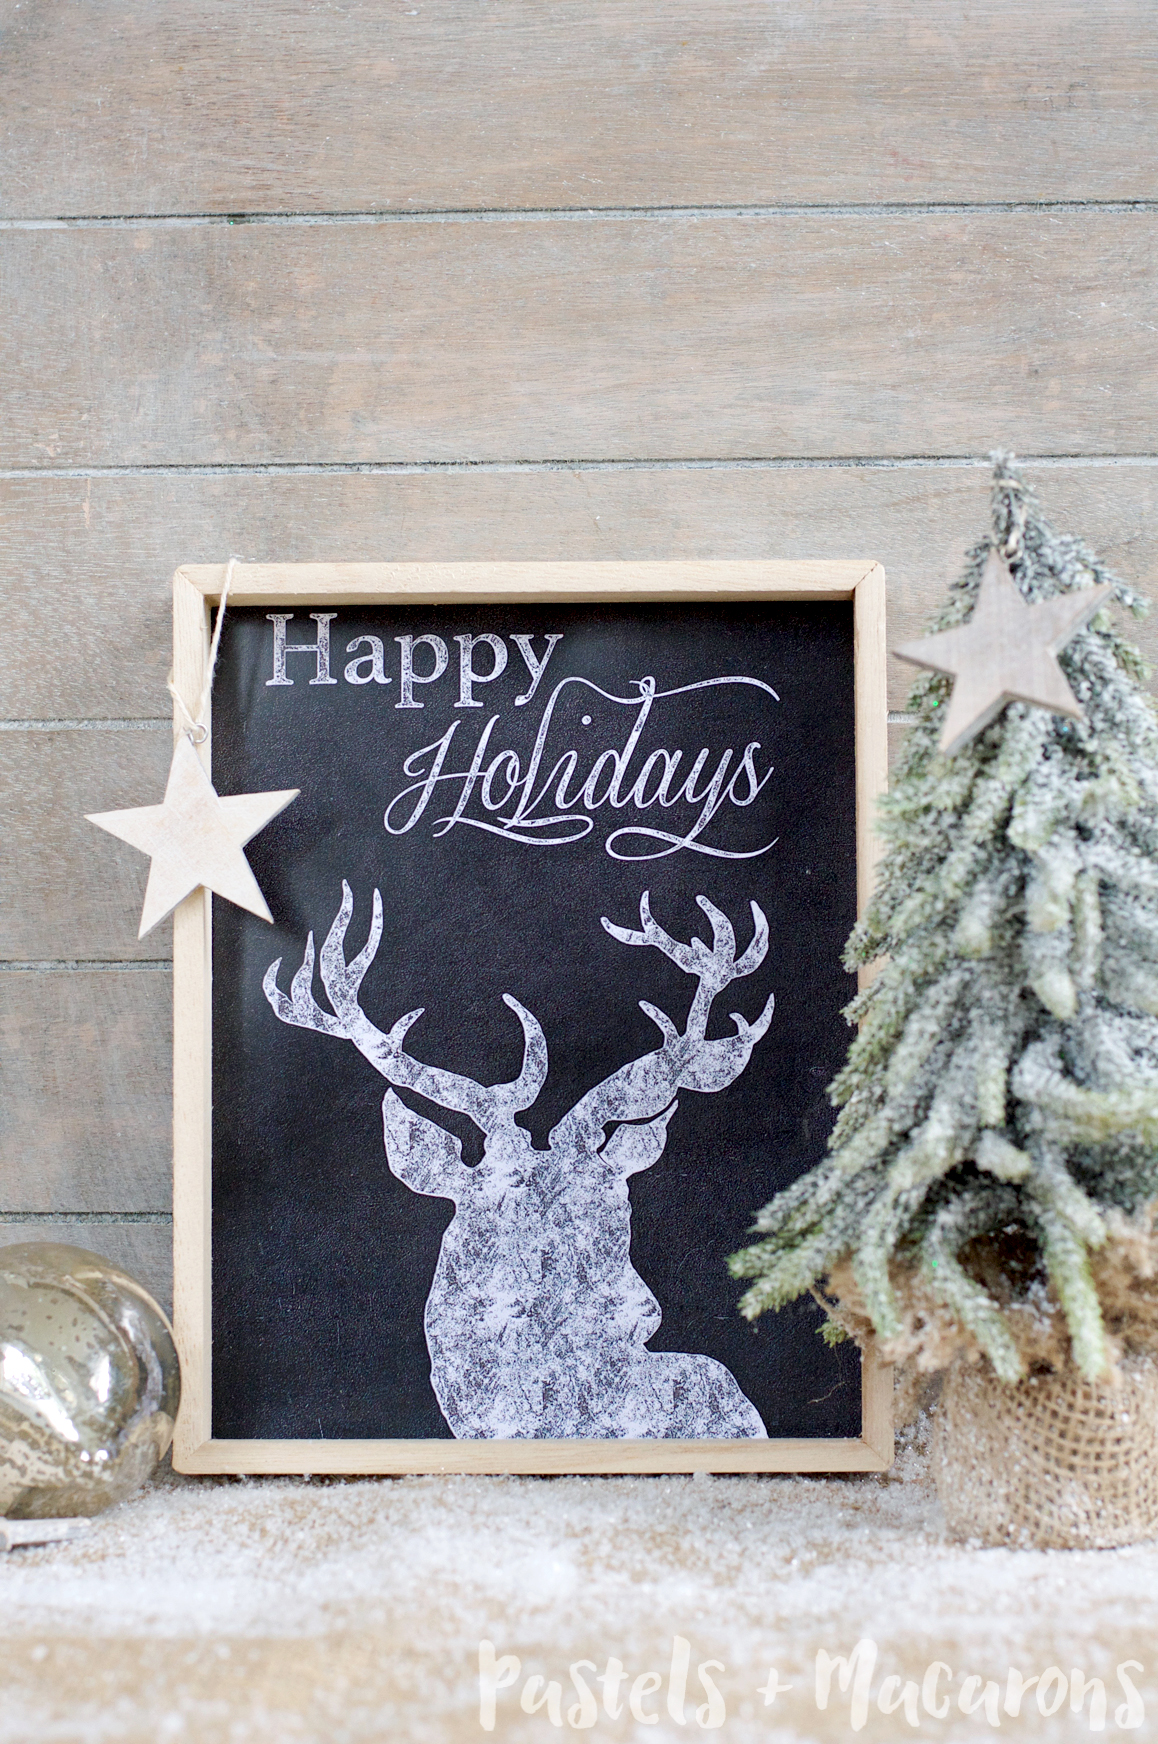 Happy Holidays Chalkboard Framed